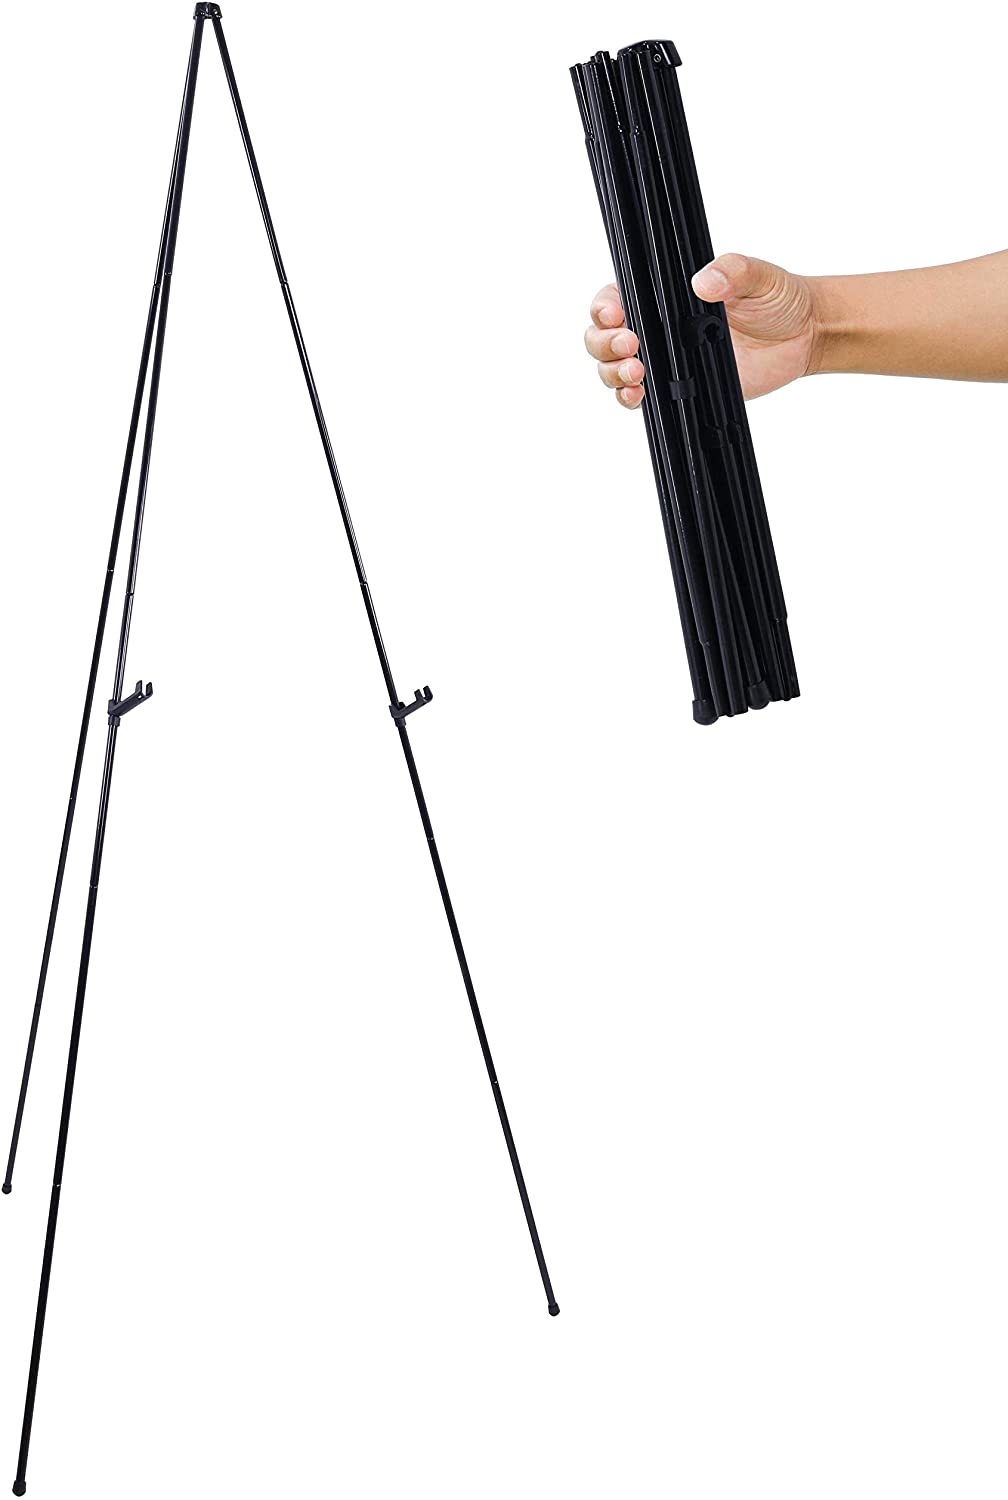 """U.S. Art Supply 63"""" High Steel Easy Folding Display Easel - Quick Set-Up, Instantly Collapses, Adjustable Height Display Holders - Portable Tripod Stand, Presentations, Signs, Posters, Holds 5 lbs"""